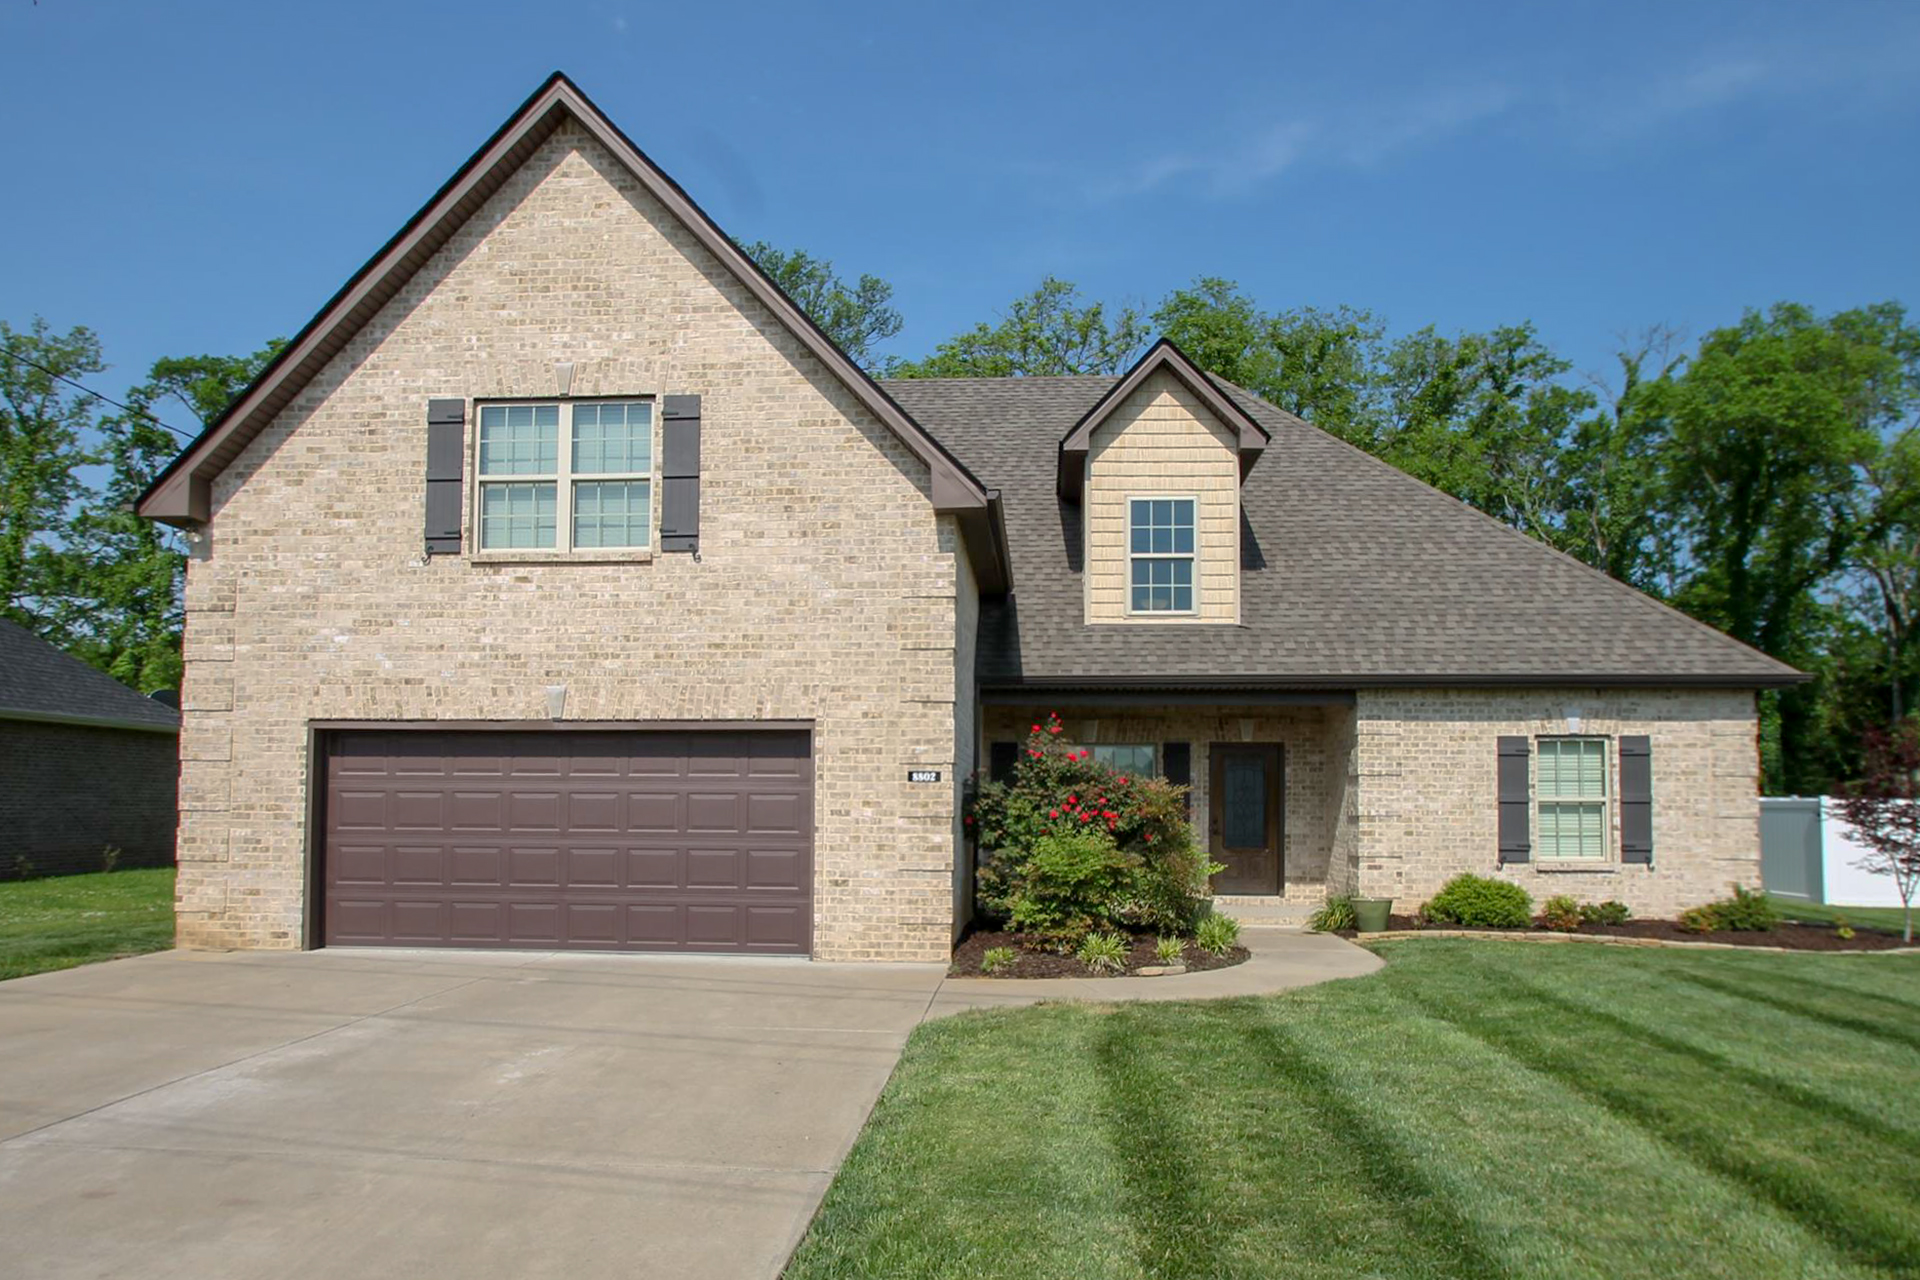 victoria park smyrna tennessee house for sale